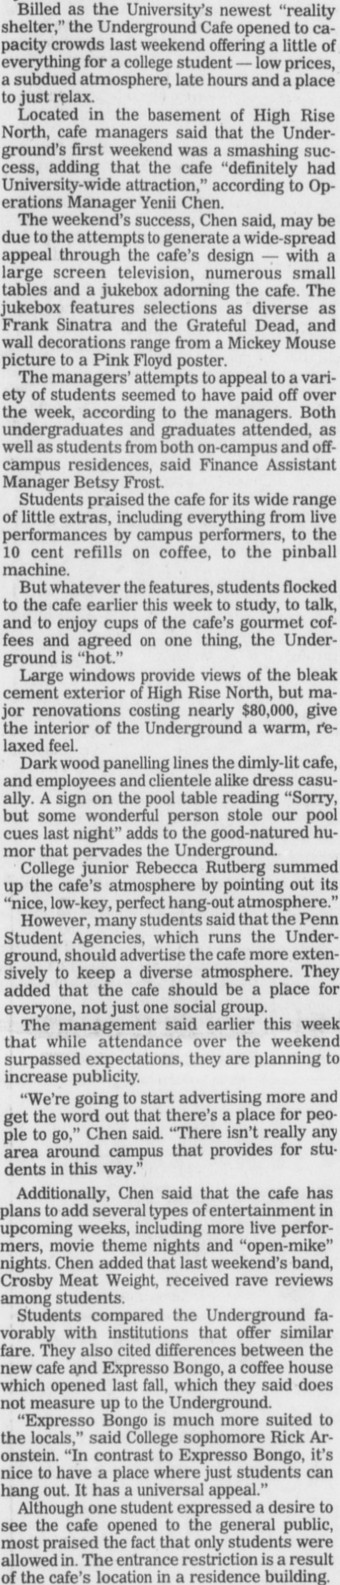 Review of the opening of The Underground Cafe by Lee Shepski from the February 2, 1990 issue of The Daily Pennsylvanian